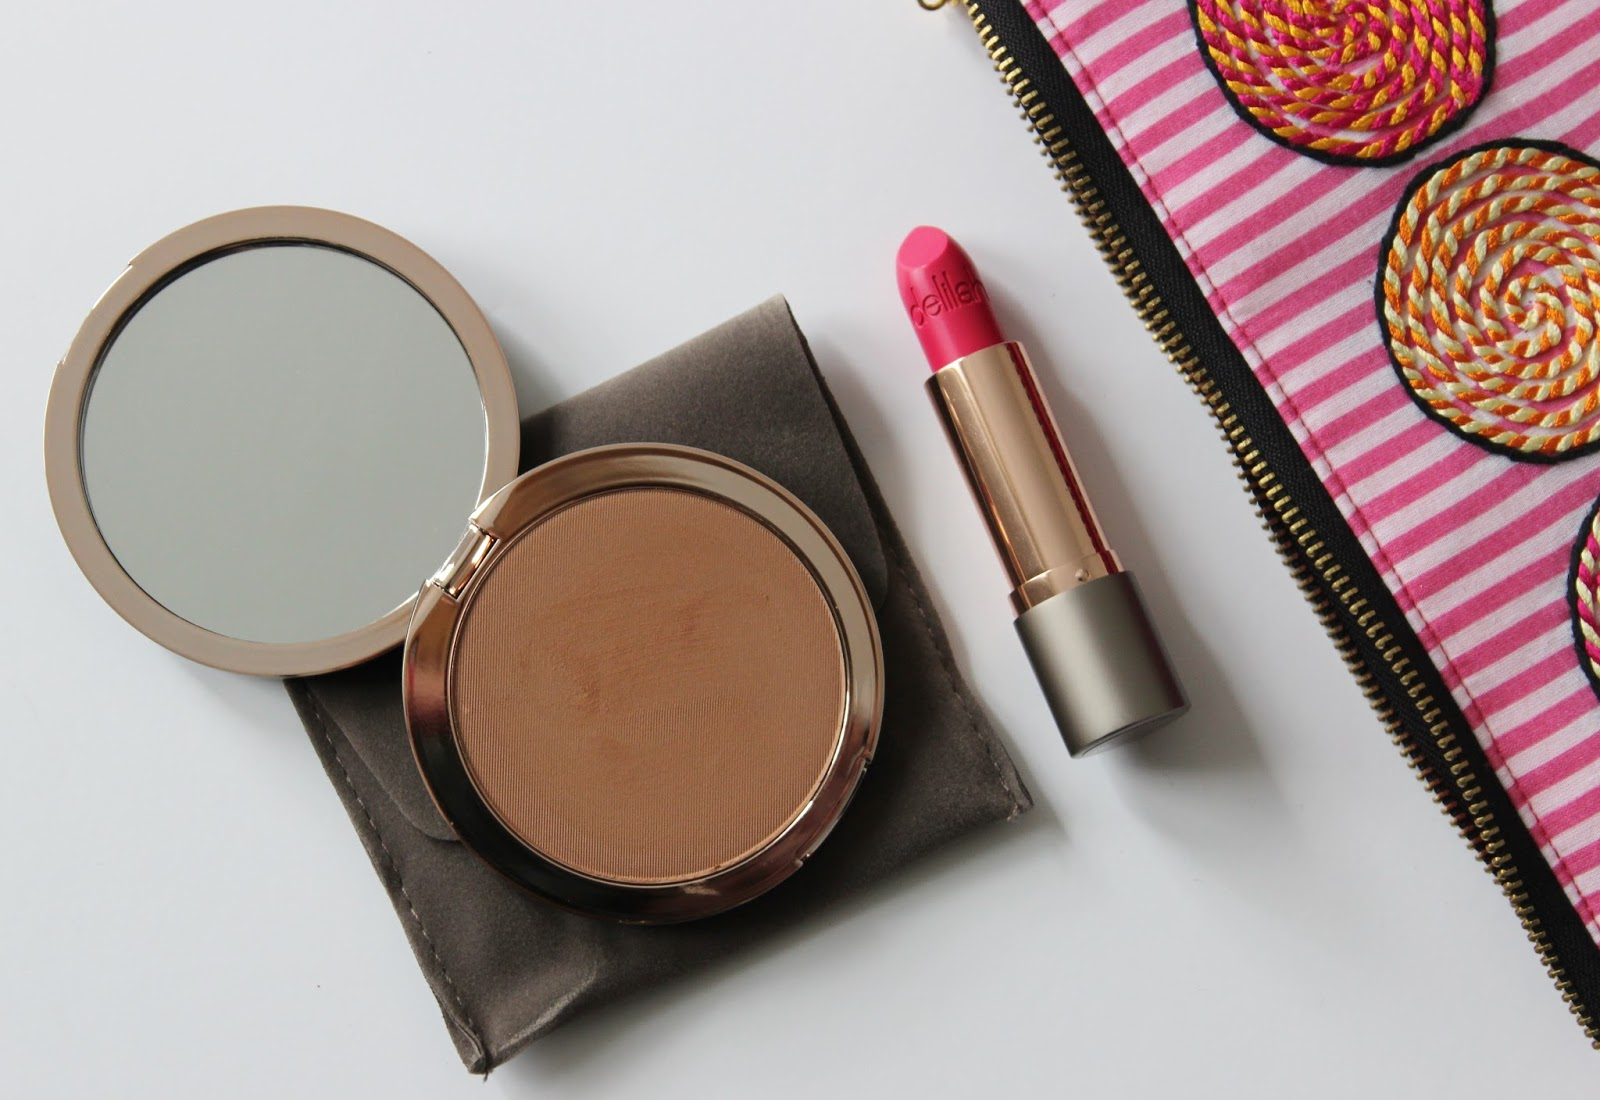 Delilah cosmetics sunset bronzer and Stiletto lipstick